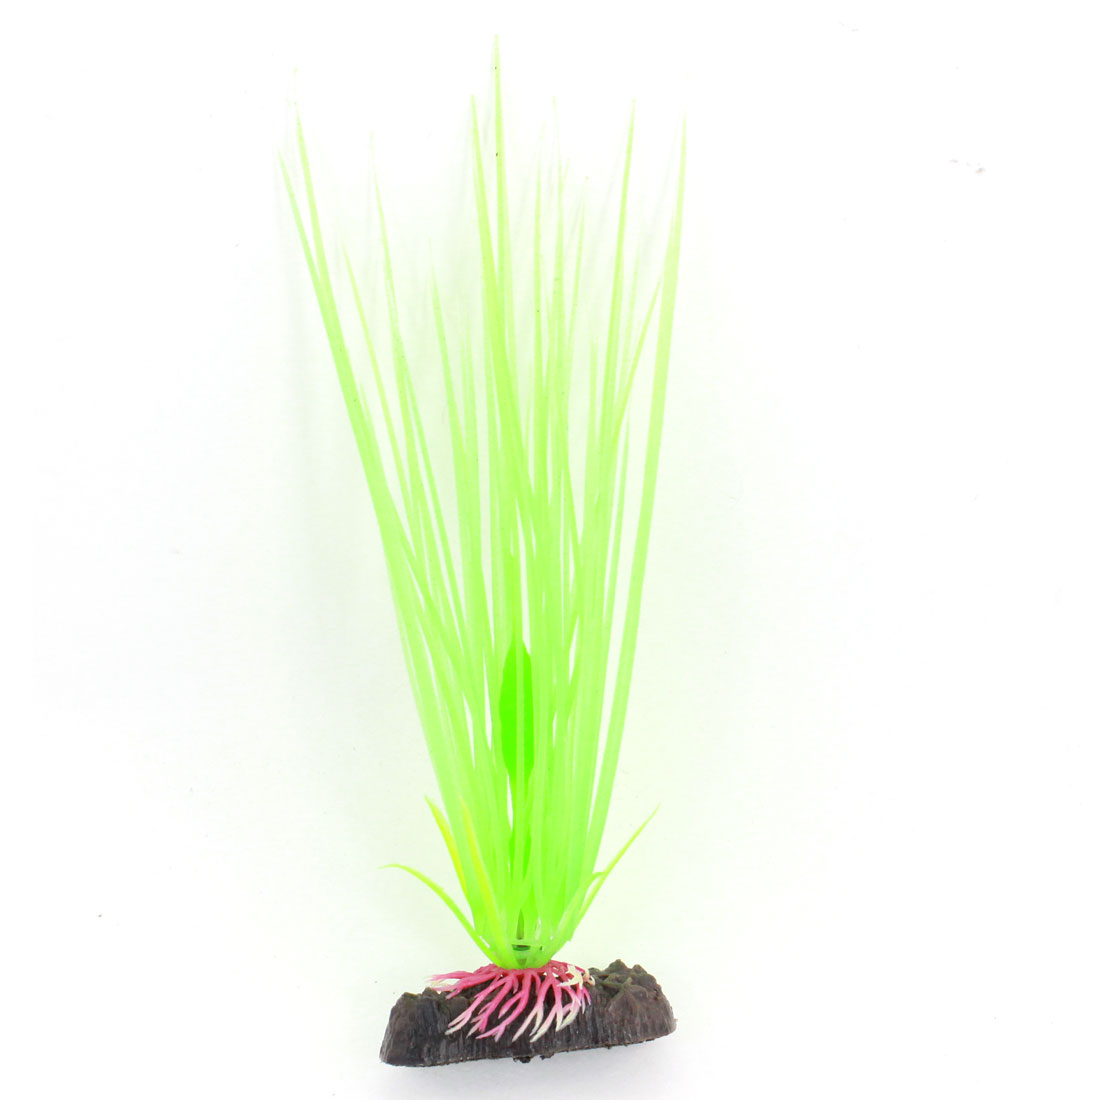 "Fish Tank Ornament Glow In Dark Manmade Aquatic Water Grass Plant Light Green 7.7"" Height"